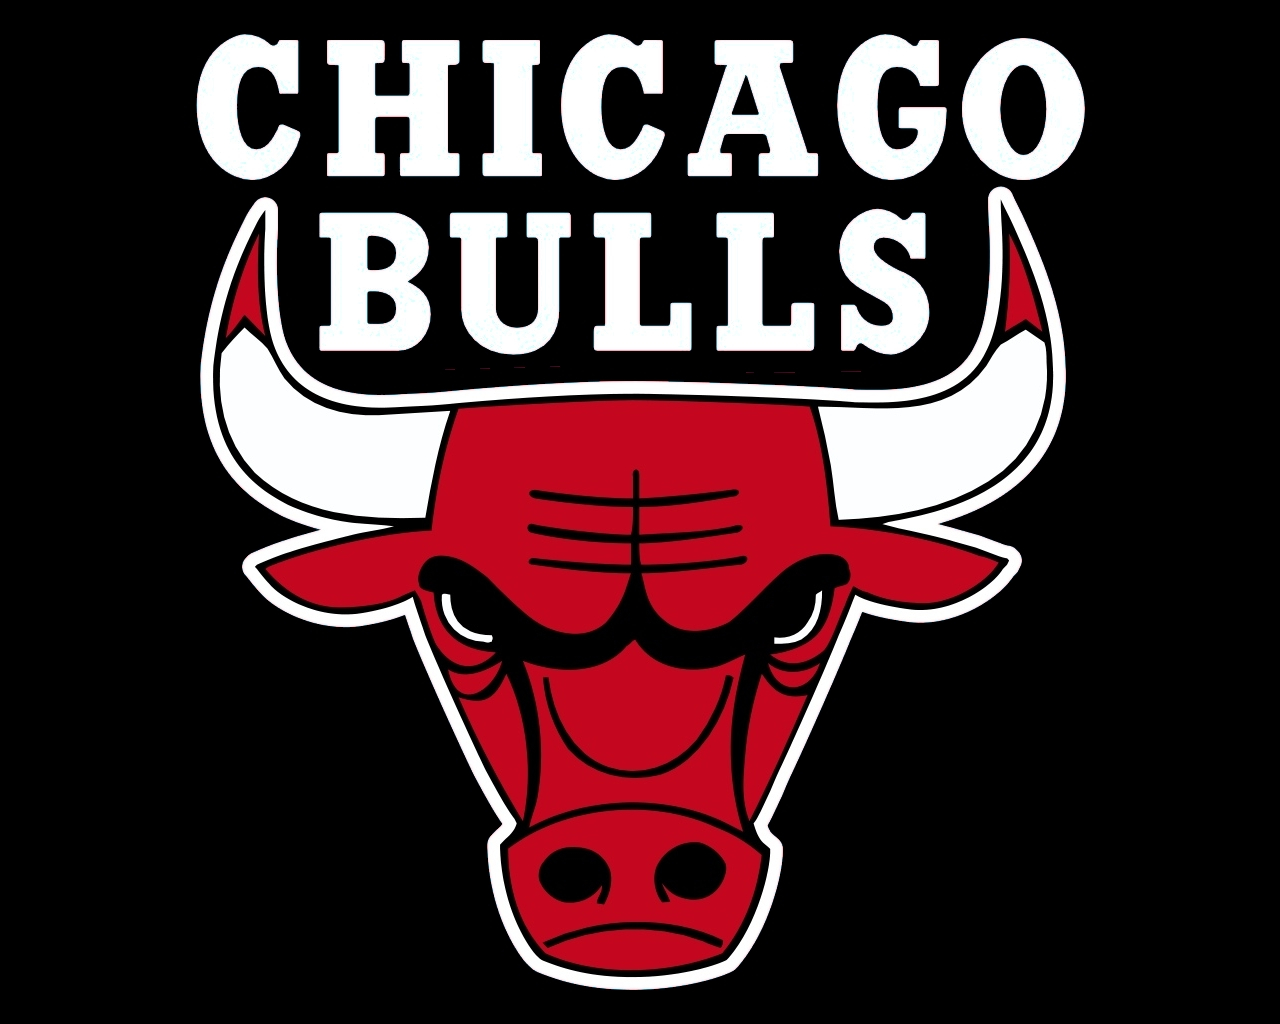 Will kirk hinrich be part of chicago bulls future